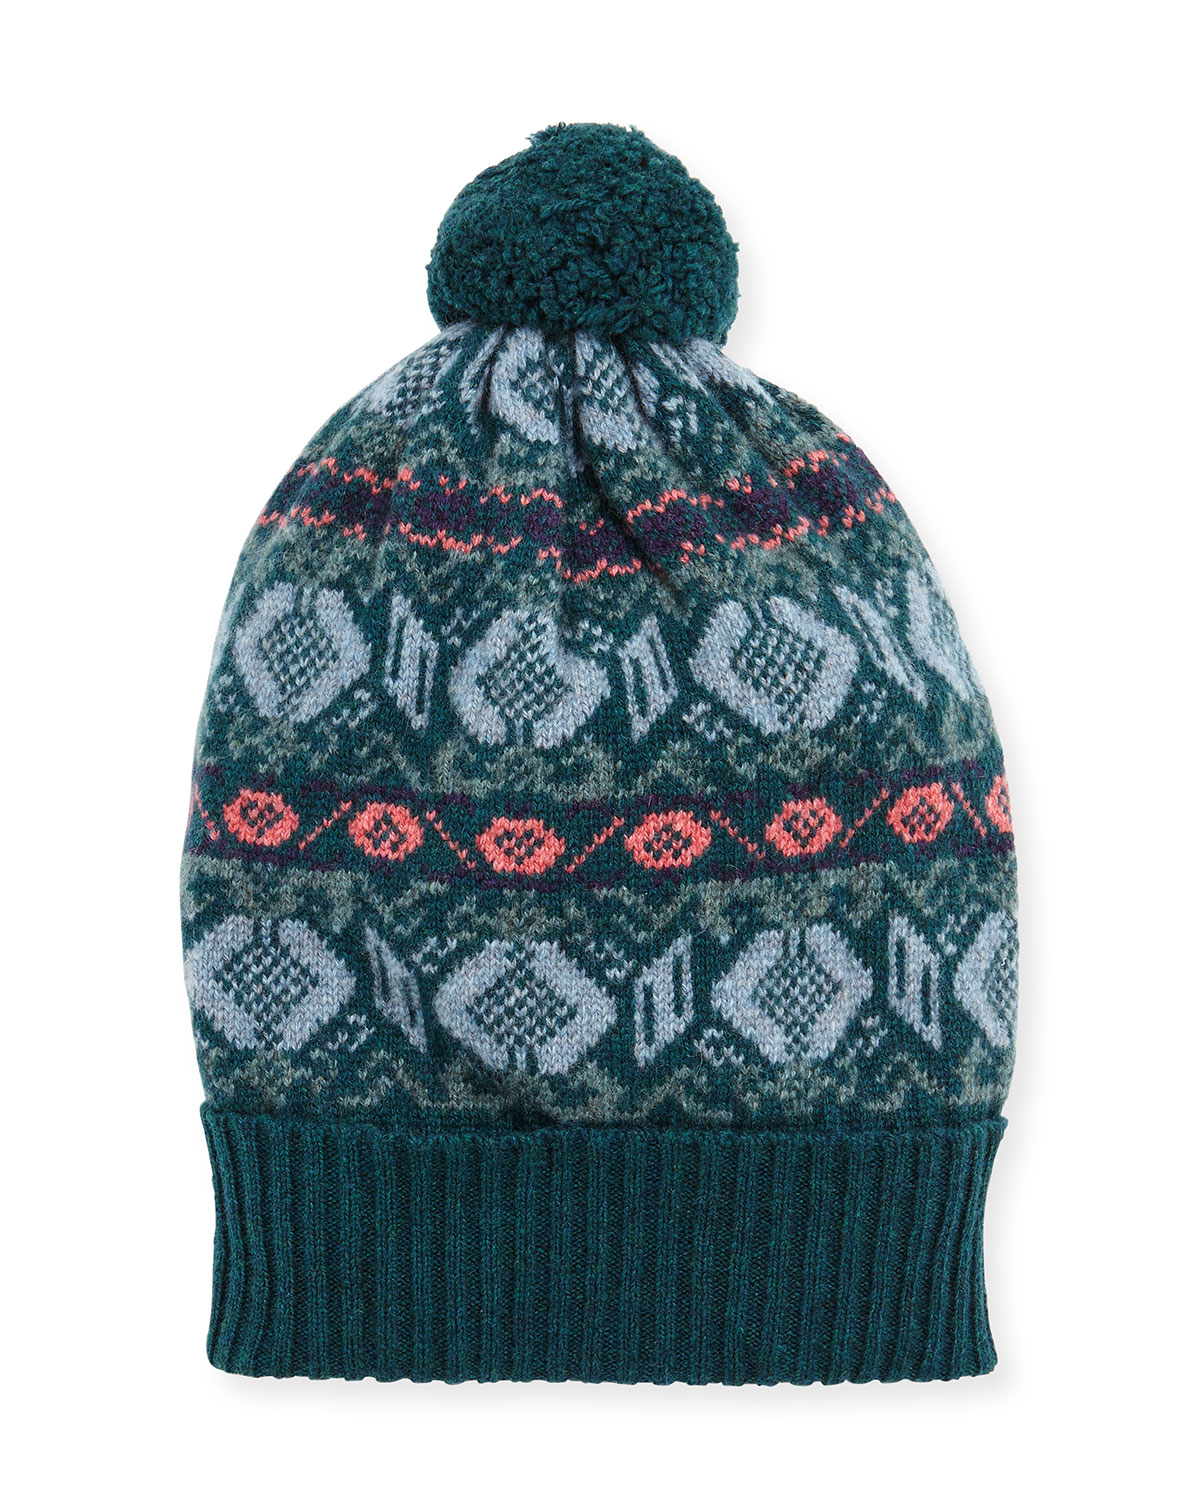 Knitting Pattern For Cashmere Beanie : Brora Fair Isle Cashmere Knit Beanie in Blue Lyst